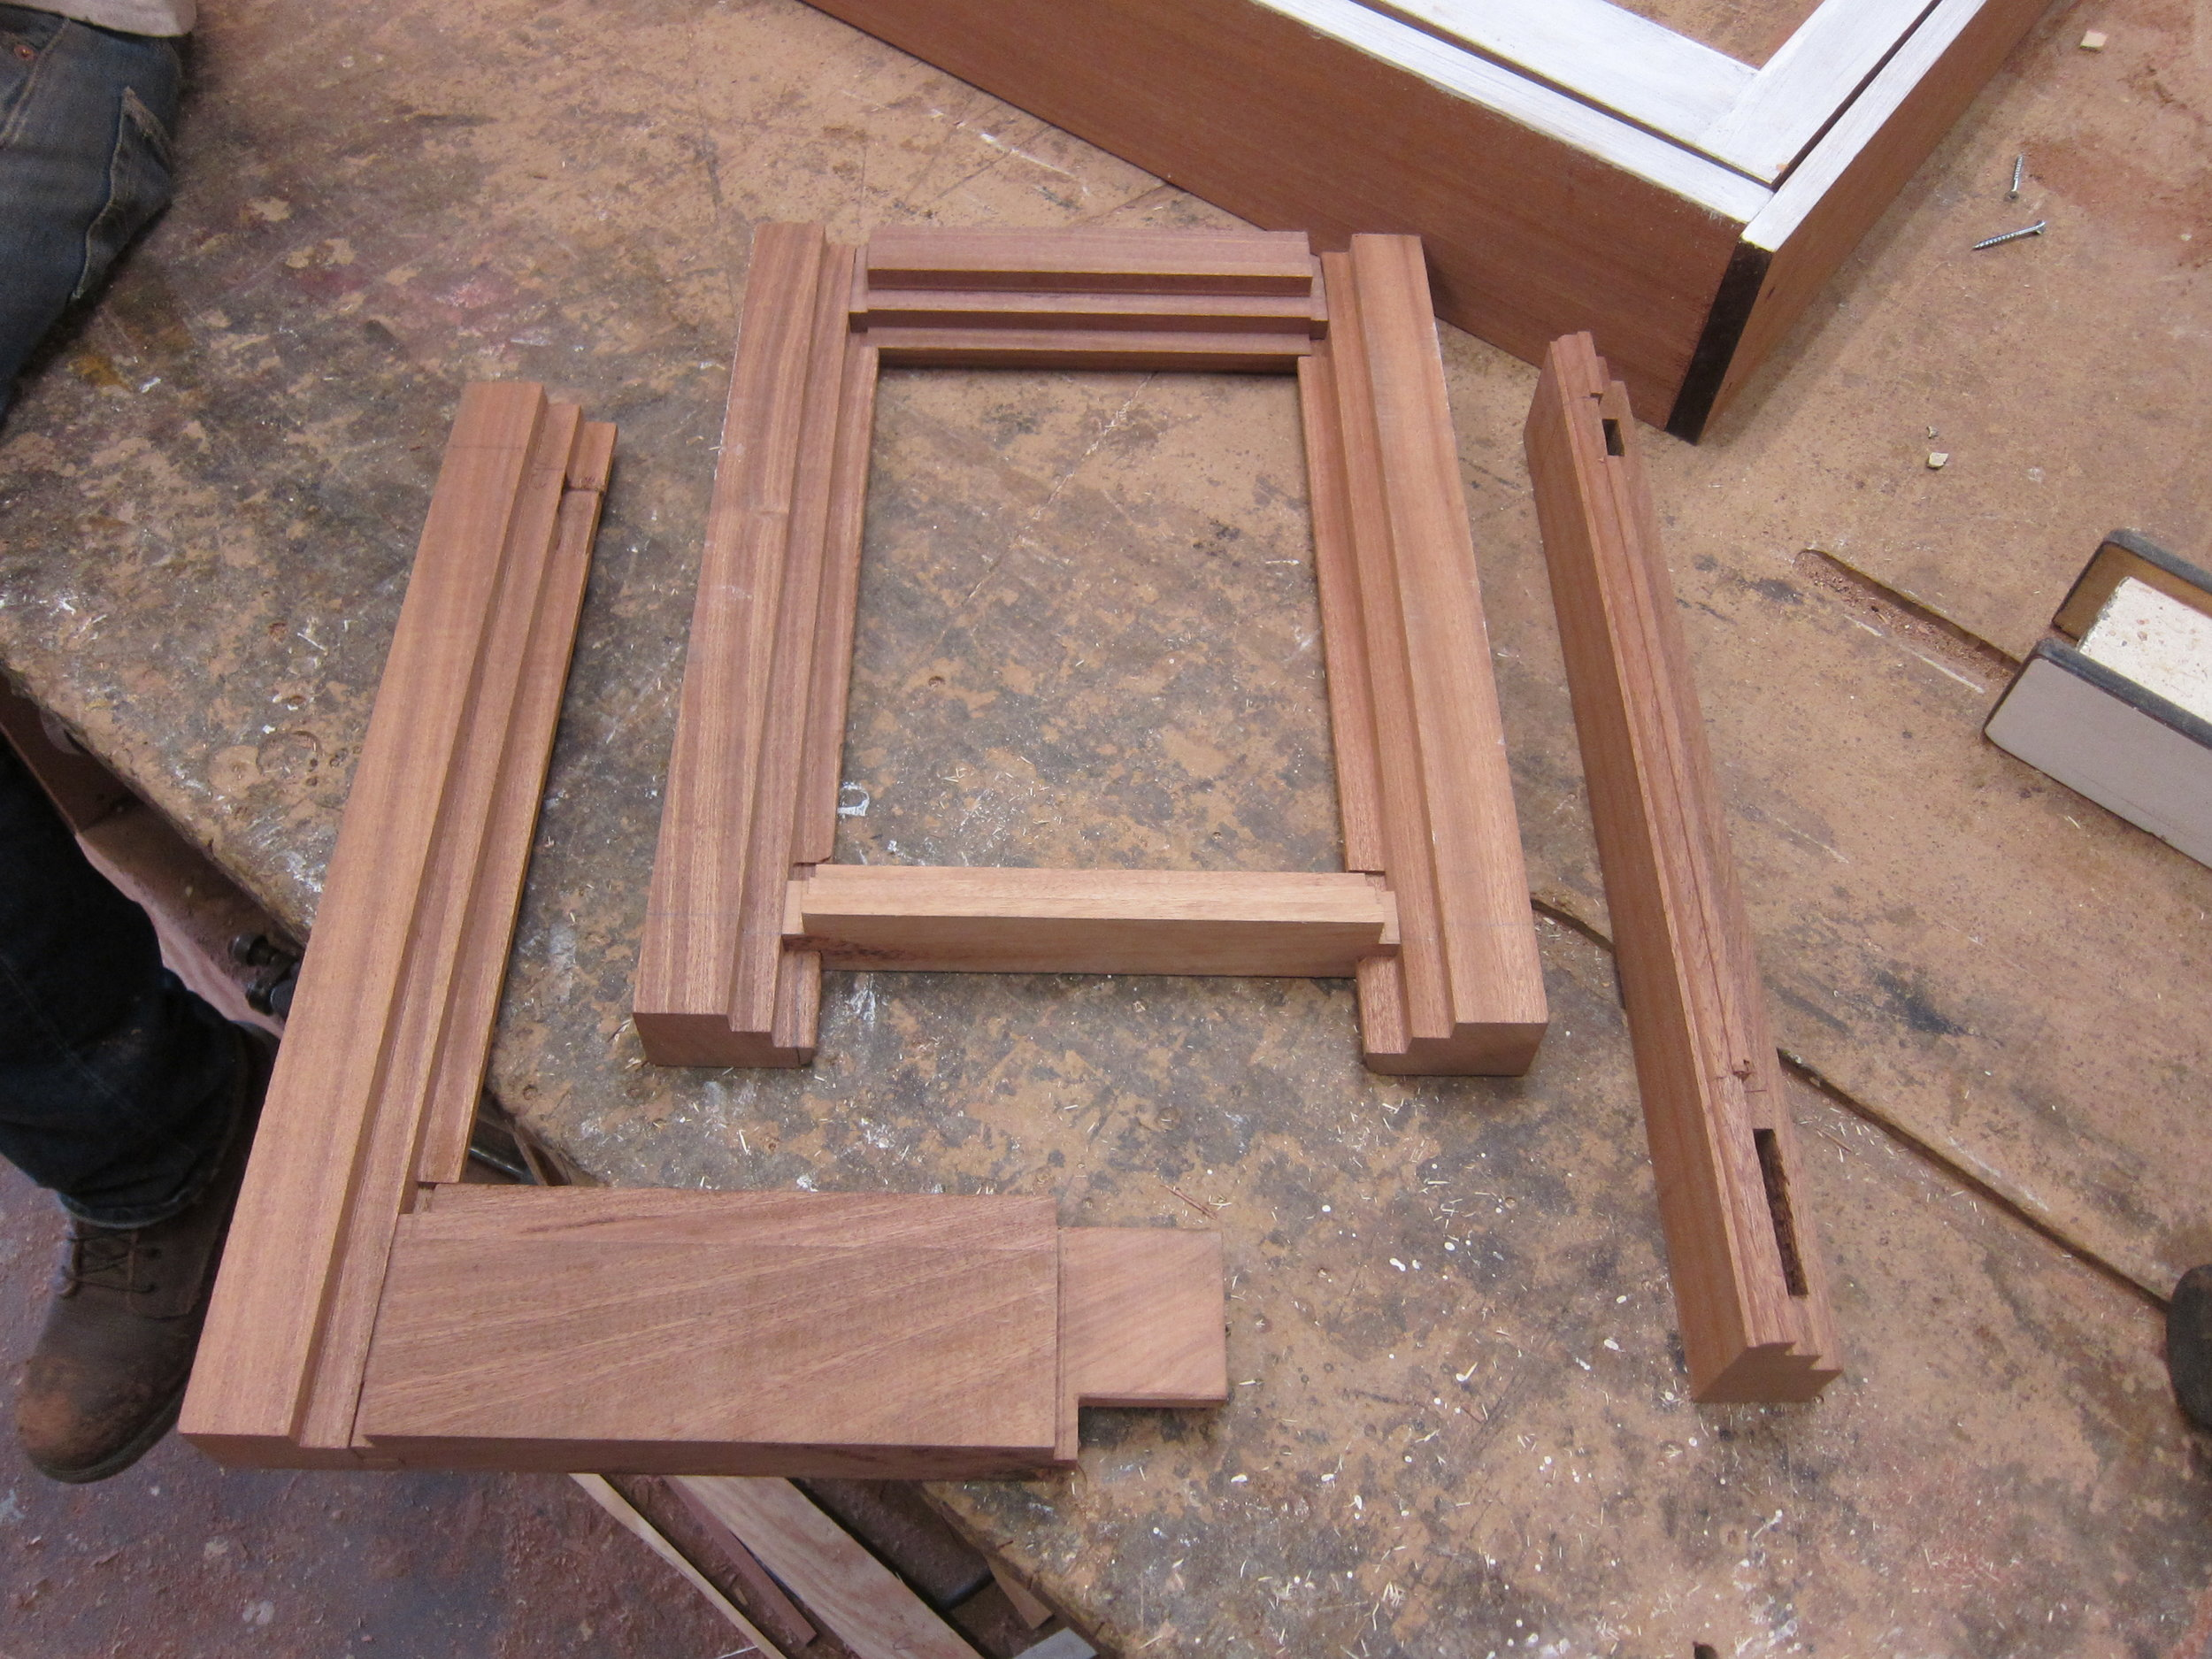 "An 1 3/4"" thick Sapele Mahogany sash with traditional joinery and profiles adapted for insulating glass.  We made 4,000 sash like this sample for the GSA headquarters.  The deeper relief for the insulating glass panels complicates joinery and assembly."